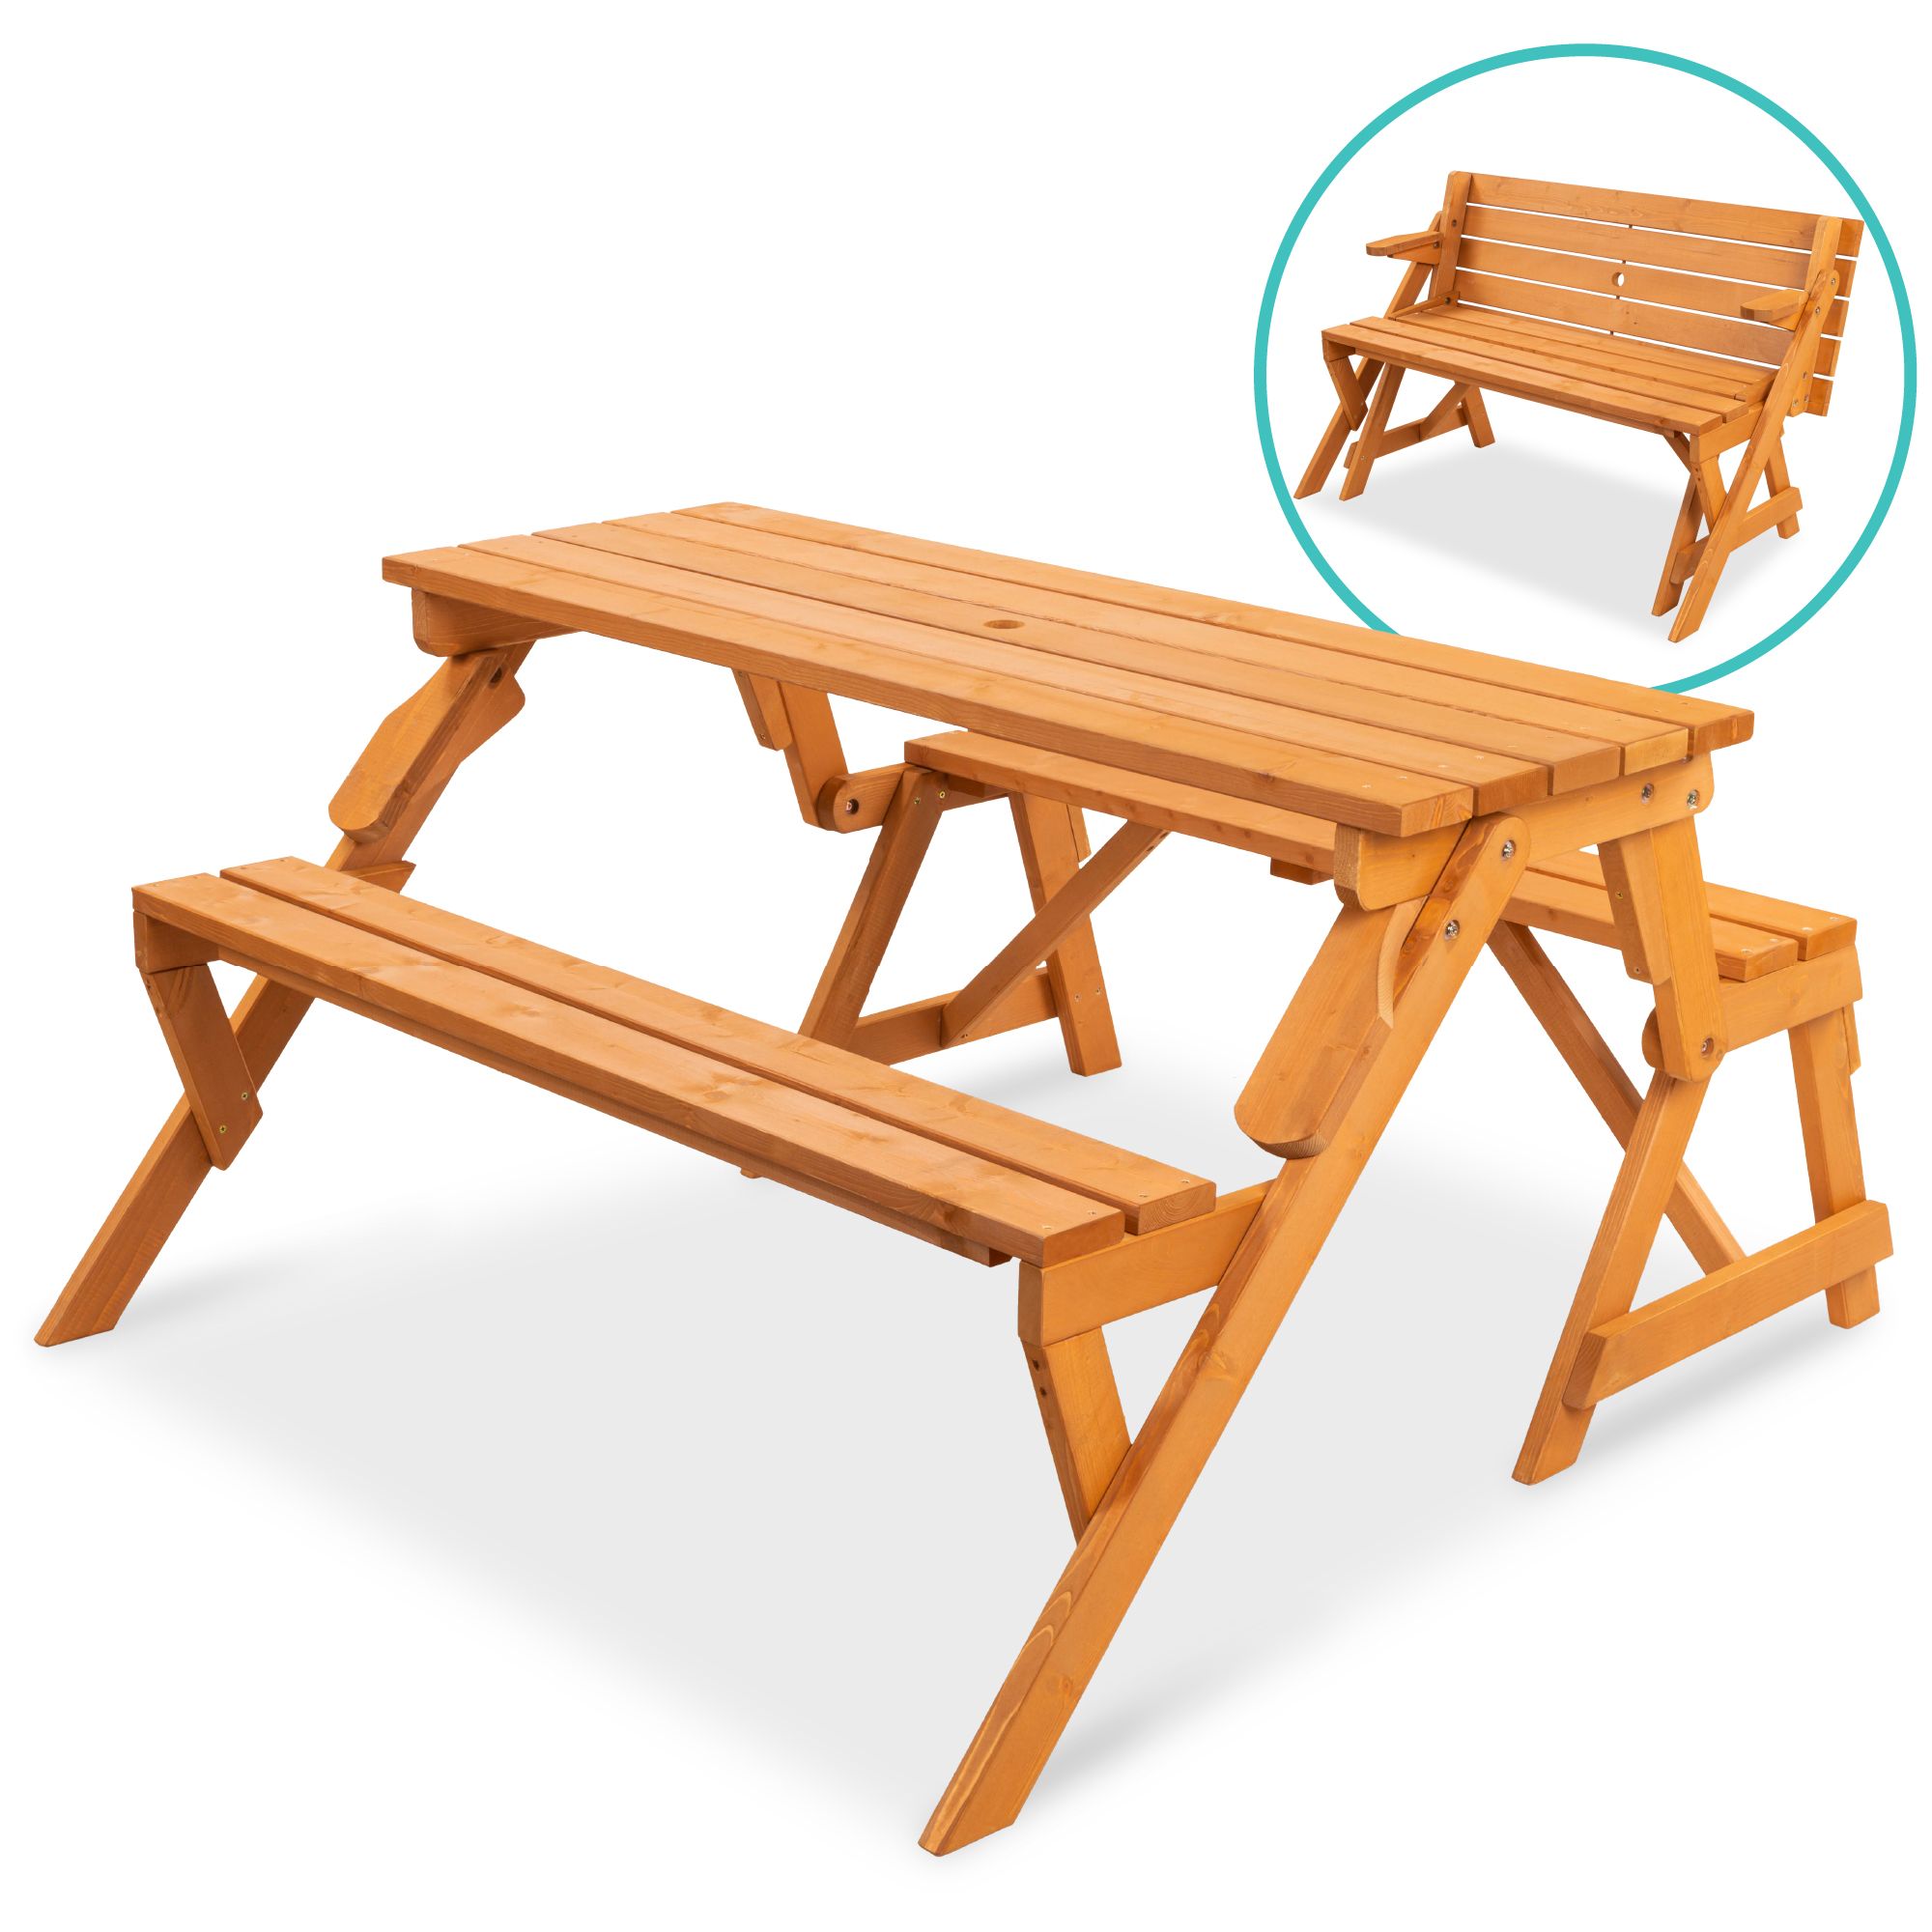 Best Choice Products 8-in-8 Outdoor Interchangeable Wooden Picnic  Table/Garden Bench for w/ Umbrella Hole - Natural - Walmart.com